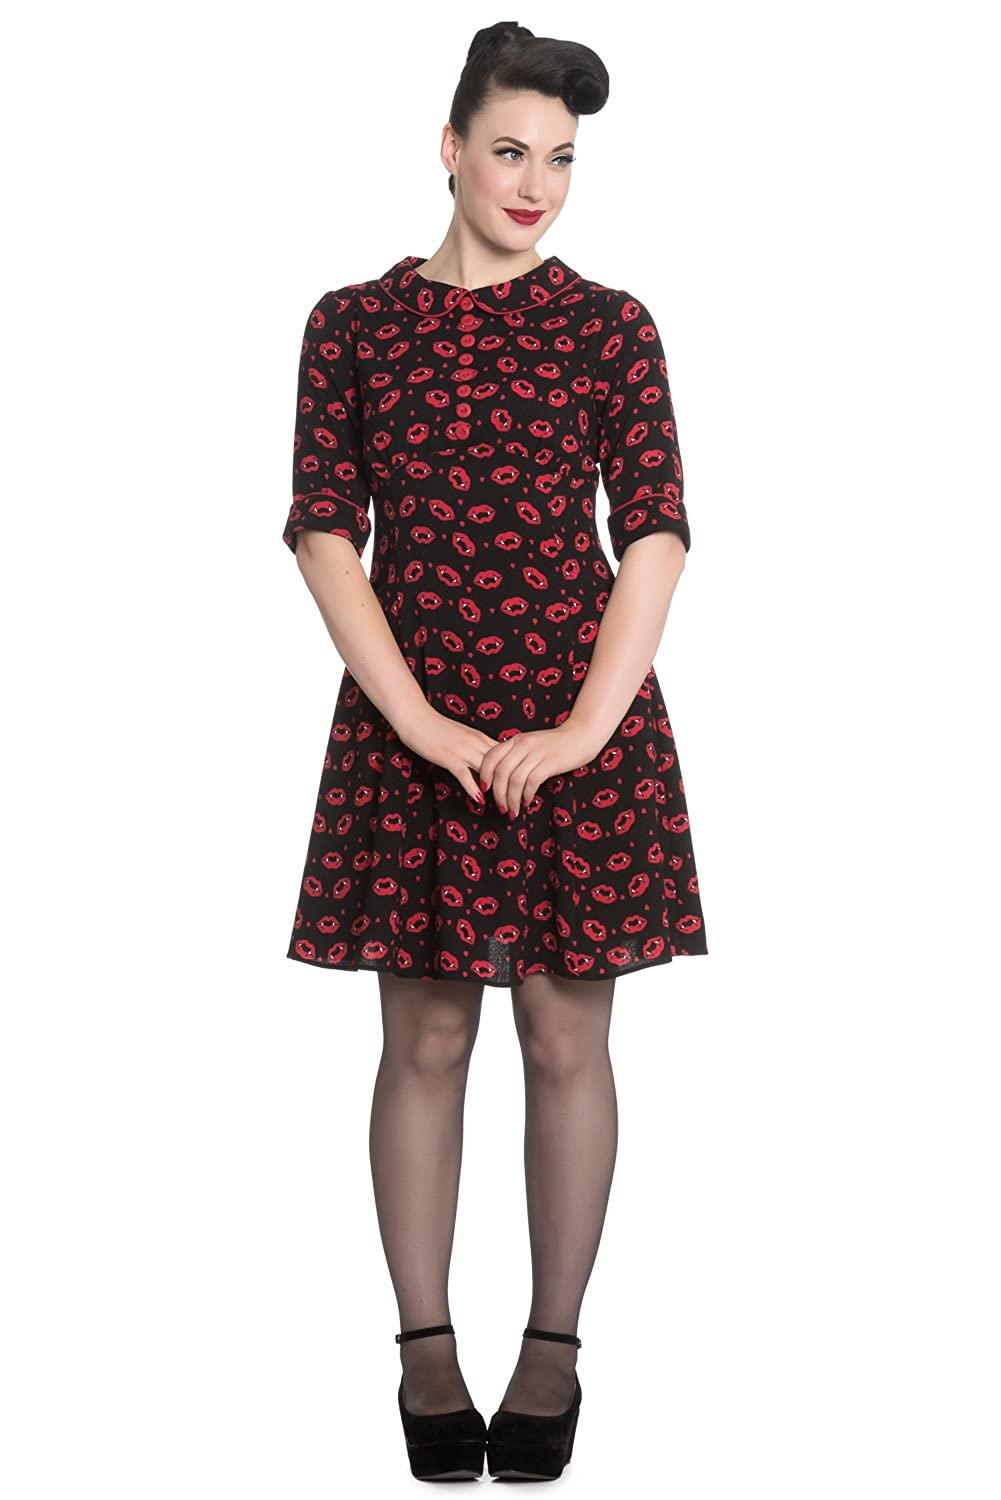 1960s Style Dresses- Retro Inspired Fashion 60s Hell Bunny Kiss Me Deadly Emo Punk 60s Dress $63.49 AT vintagedancer.com